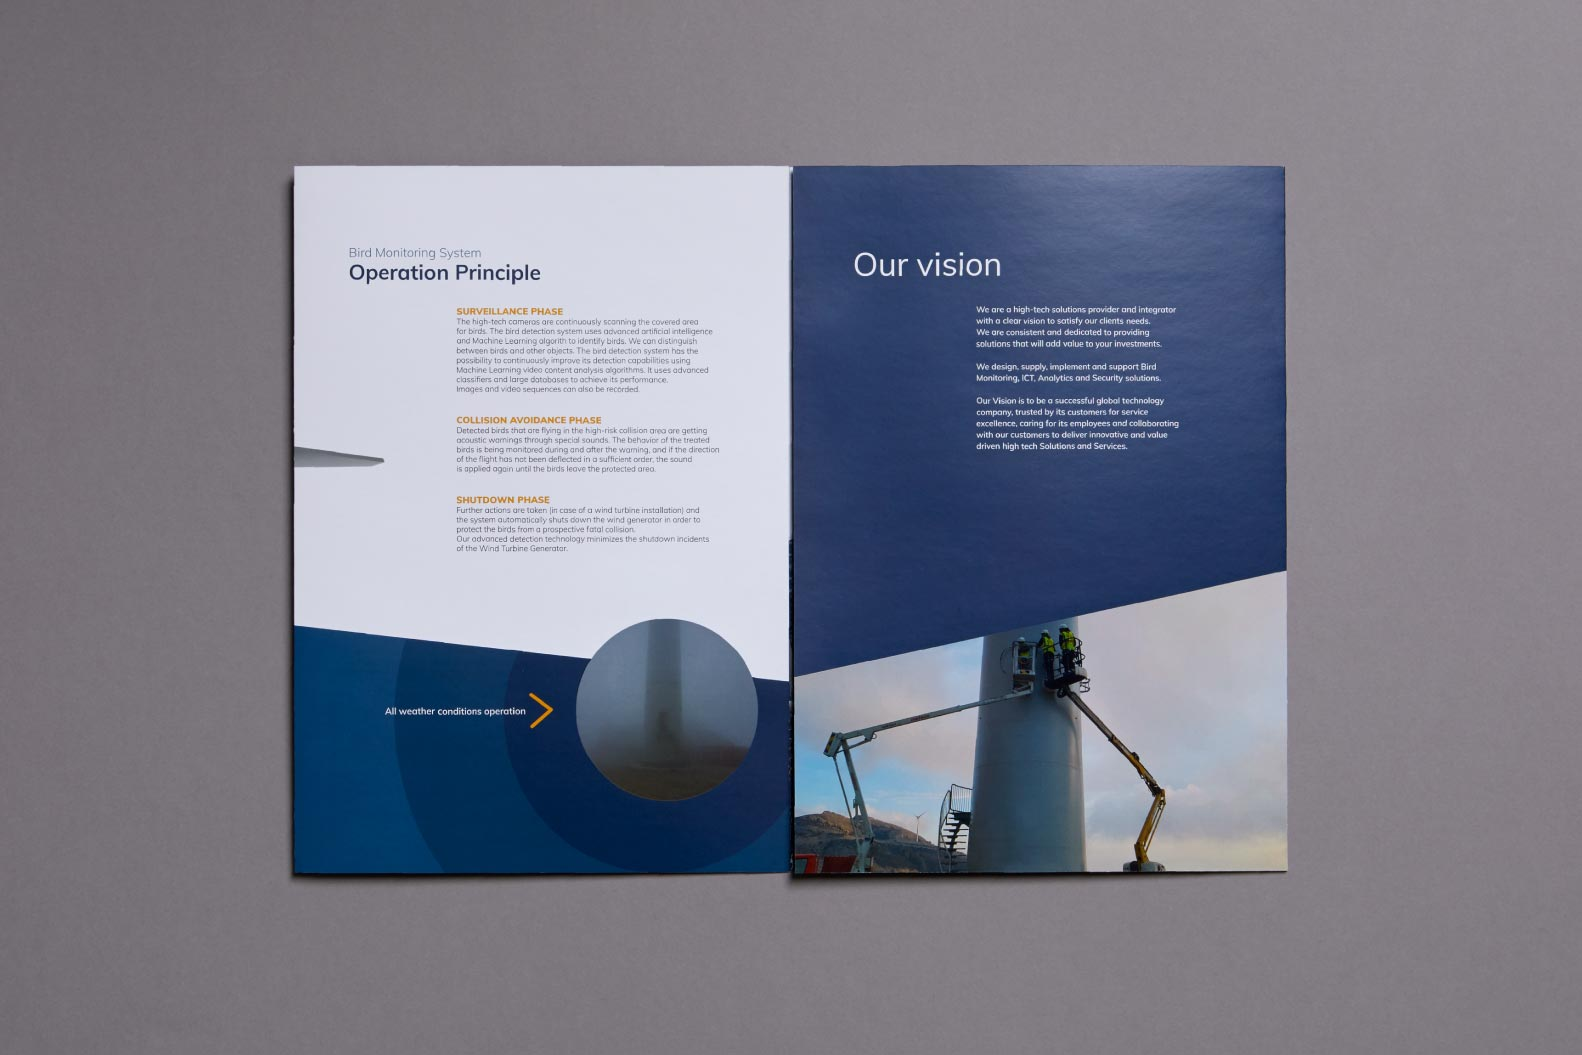 Mdesigners-digisec-brochure-design-bird-monitoring-system-4